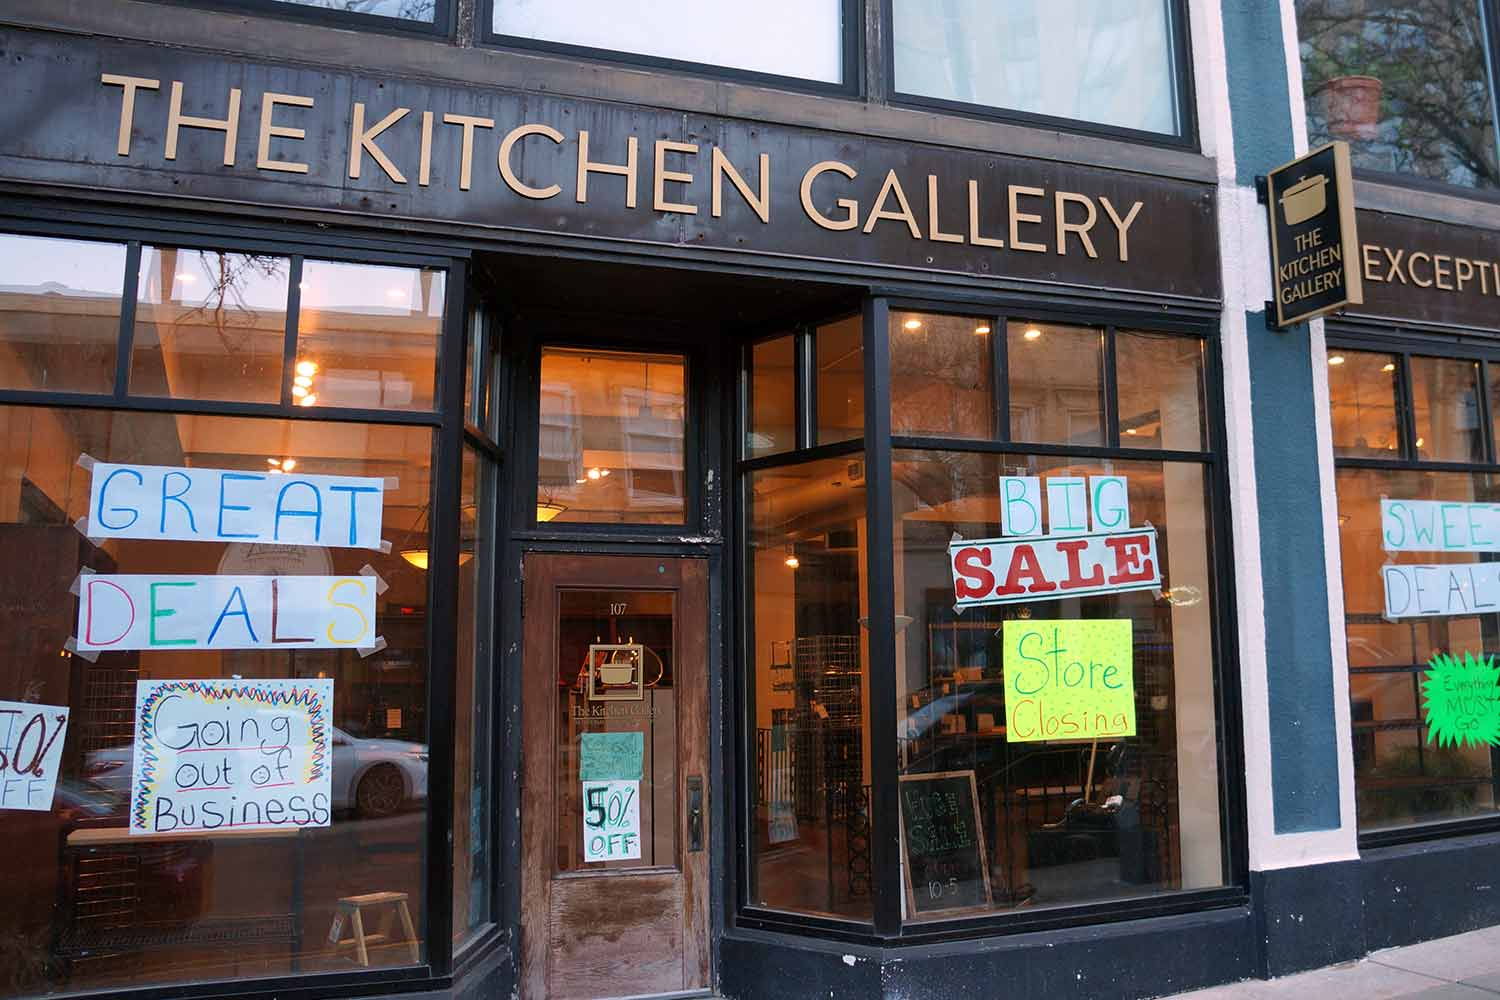 The Kitchen Gallery is closing.